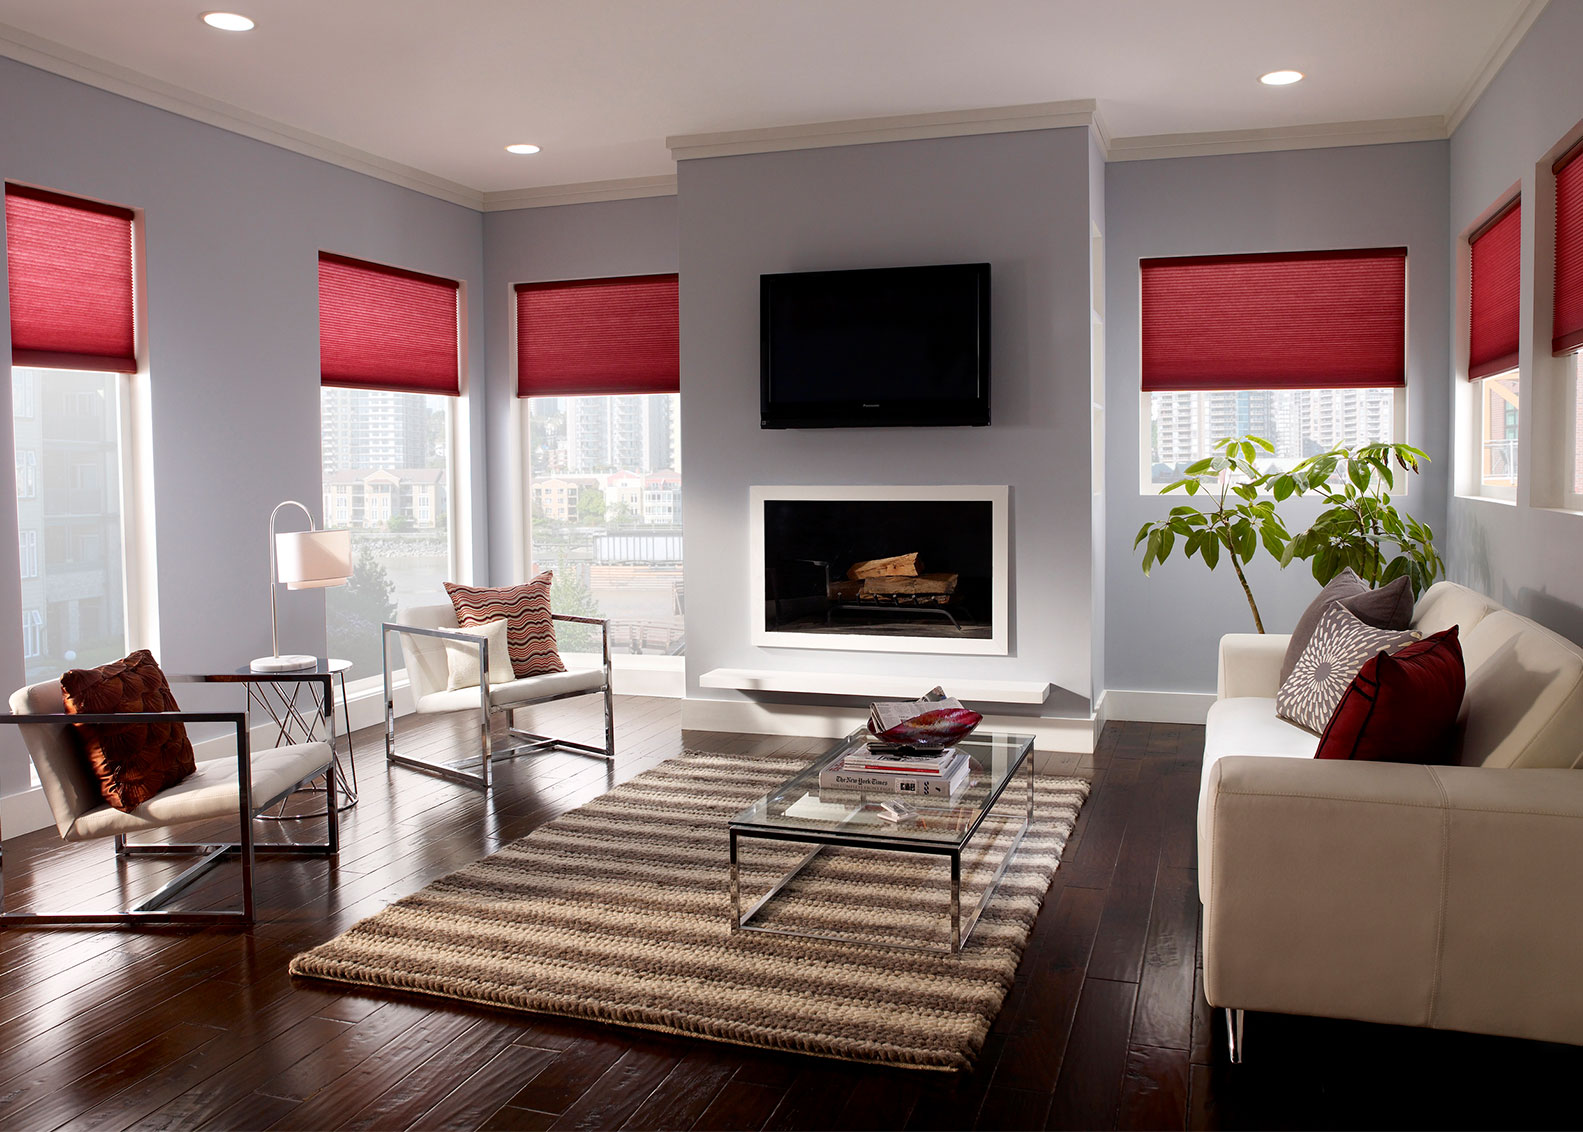 Smart Home Blinds & Shades